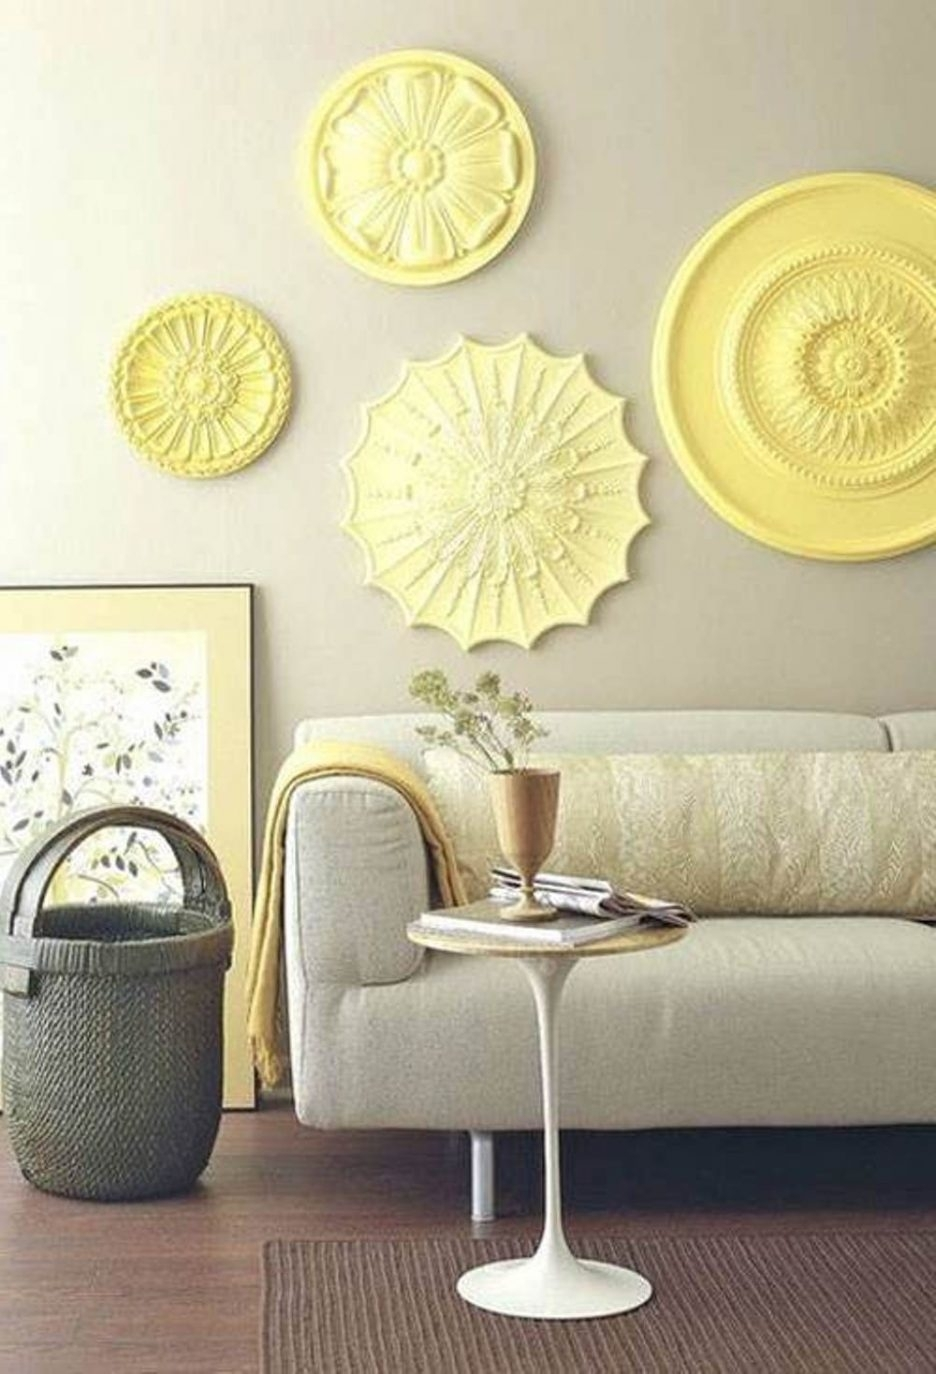 Living Room : Wonderful Wall Art Ideas For Living Room With Yellow within Most Up-to-Date Yellow Wall Accents